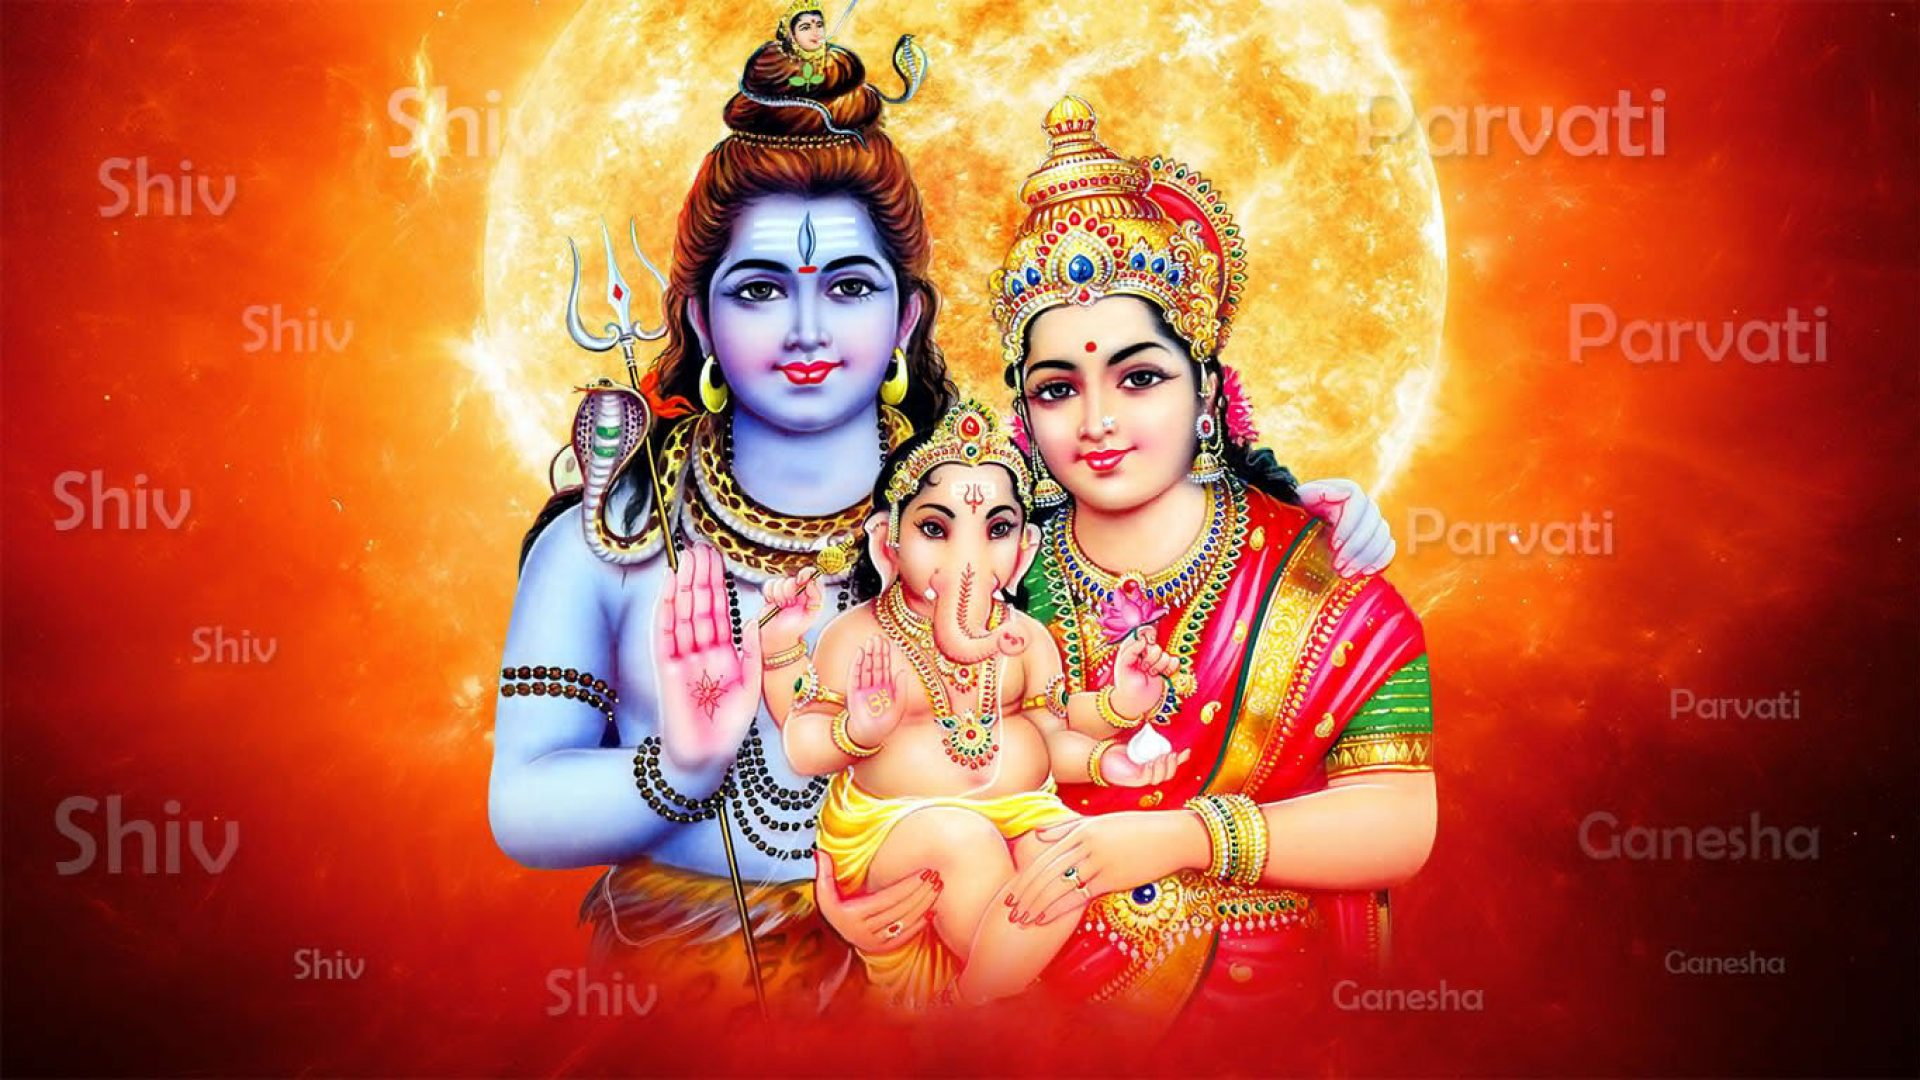 beautiful images of lord shiva and parvati 3d